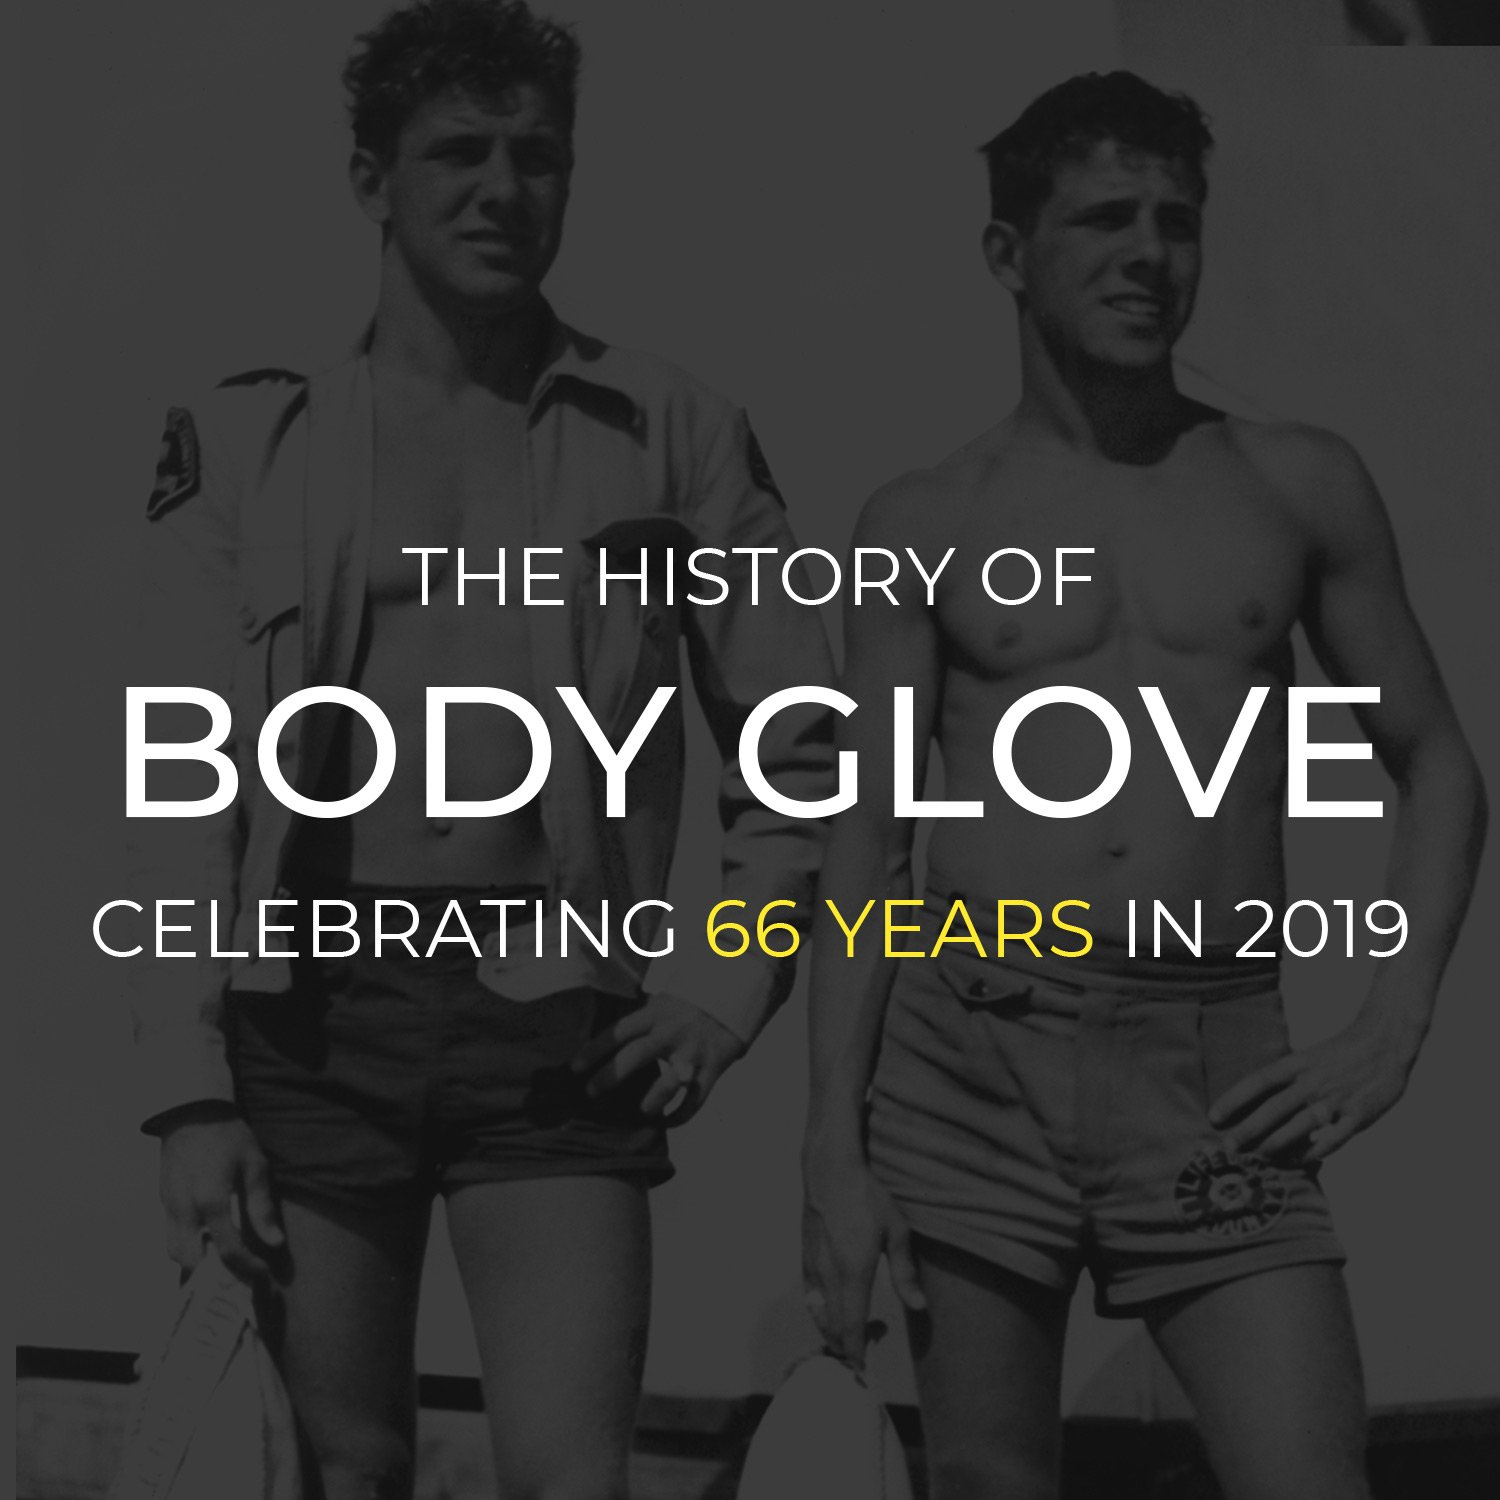 The History of Body Glove | Celebrating 66 Years in 2019